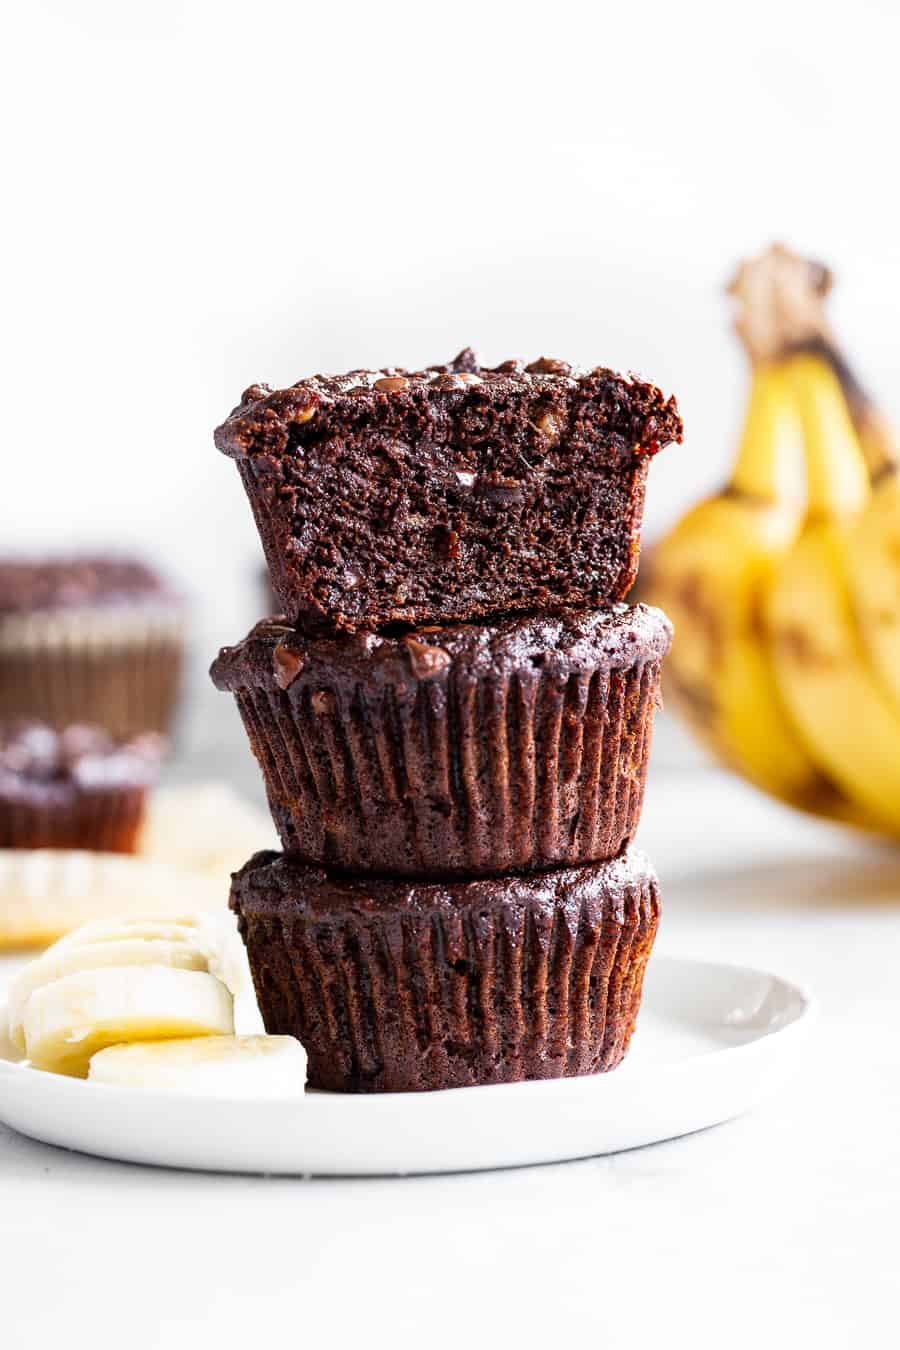 These moist and tender double chocolate banana muffins are quick and easy to make and taste just as decadent as rich chocolate cupcakes! Made with coconut flour and raw cacao powder so they're paleo plus nut free, gluten free, and dairy free. Kid approved and great for snacks and dessert! #paleorecipes #bananamuffins #paleo #paleobaking #glutenfree #coconutflour